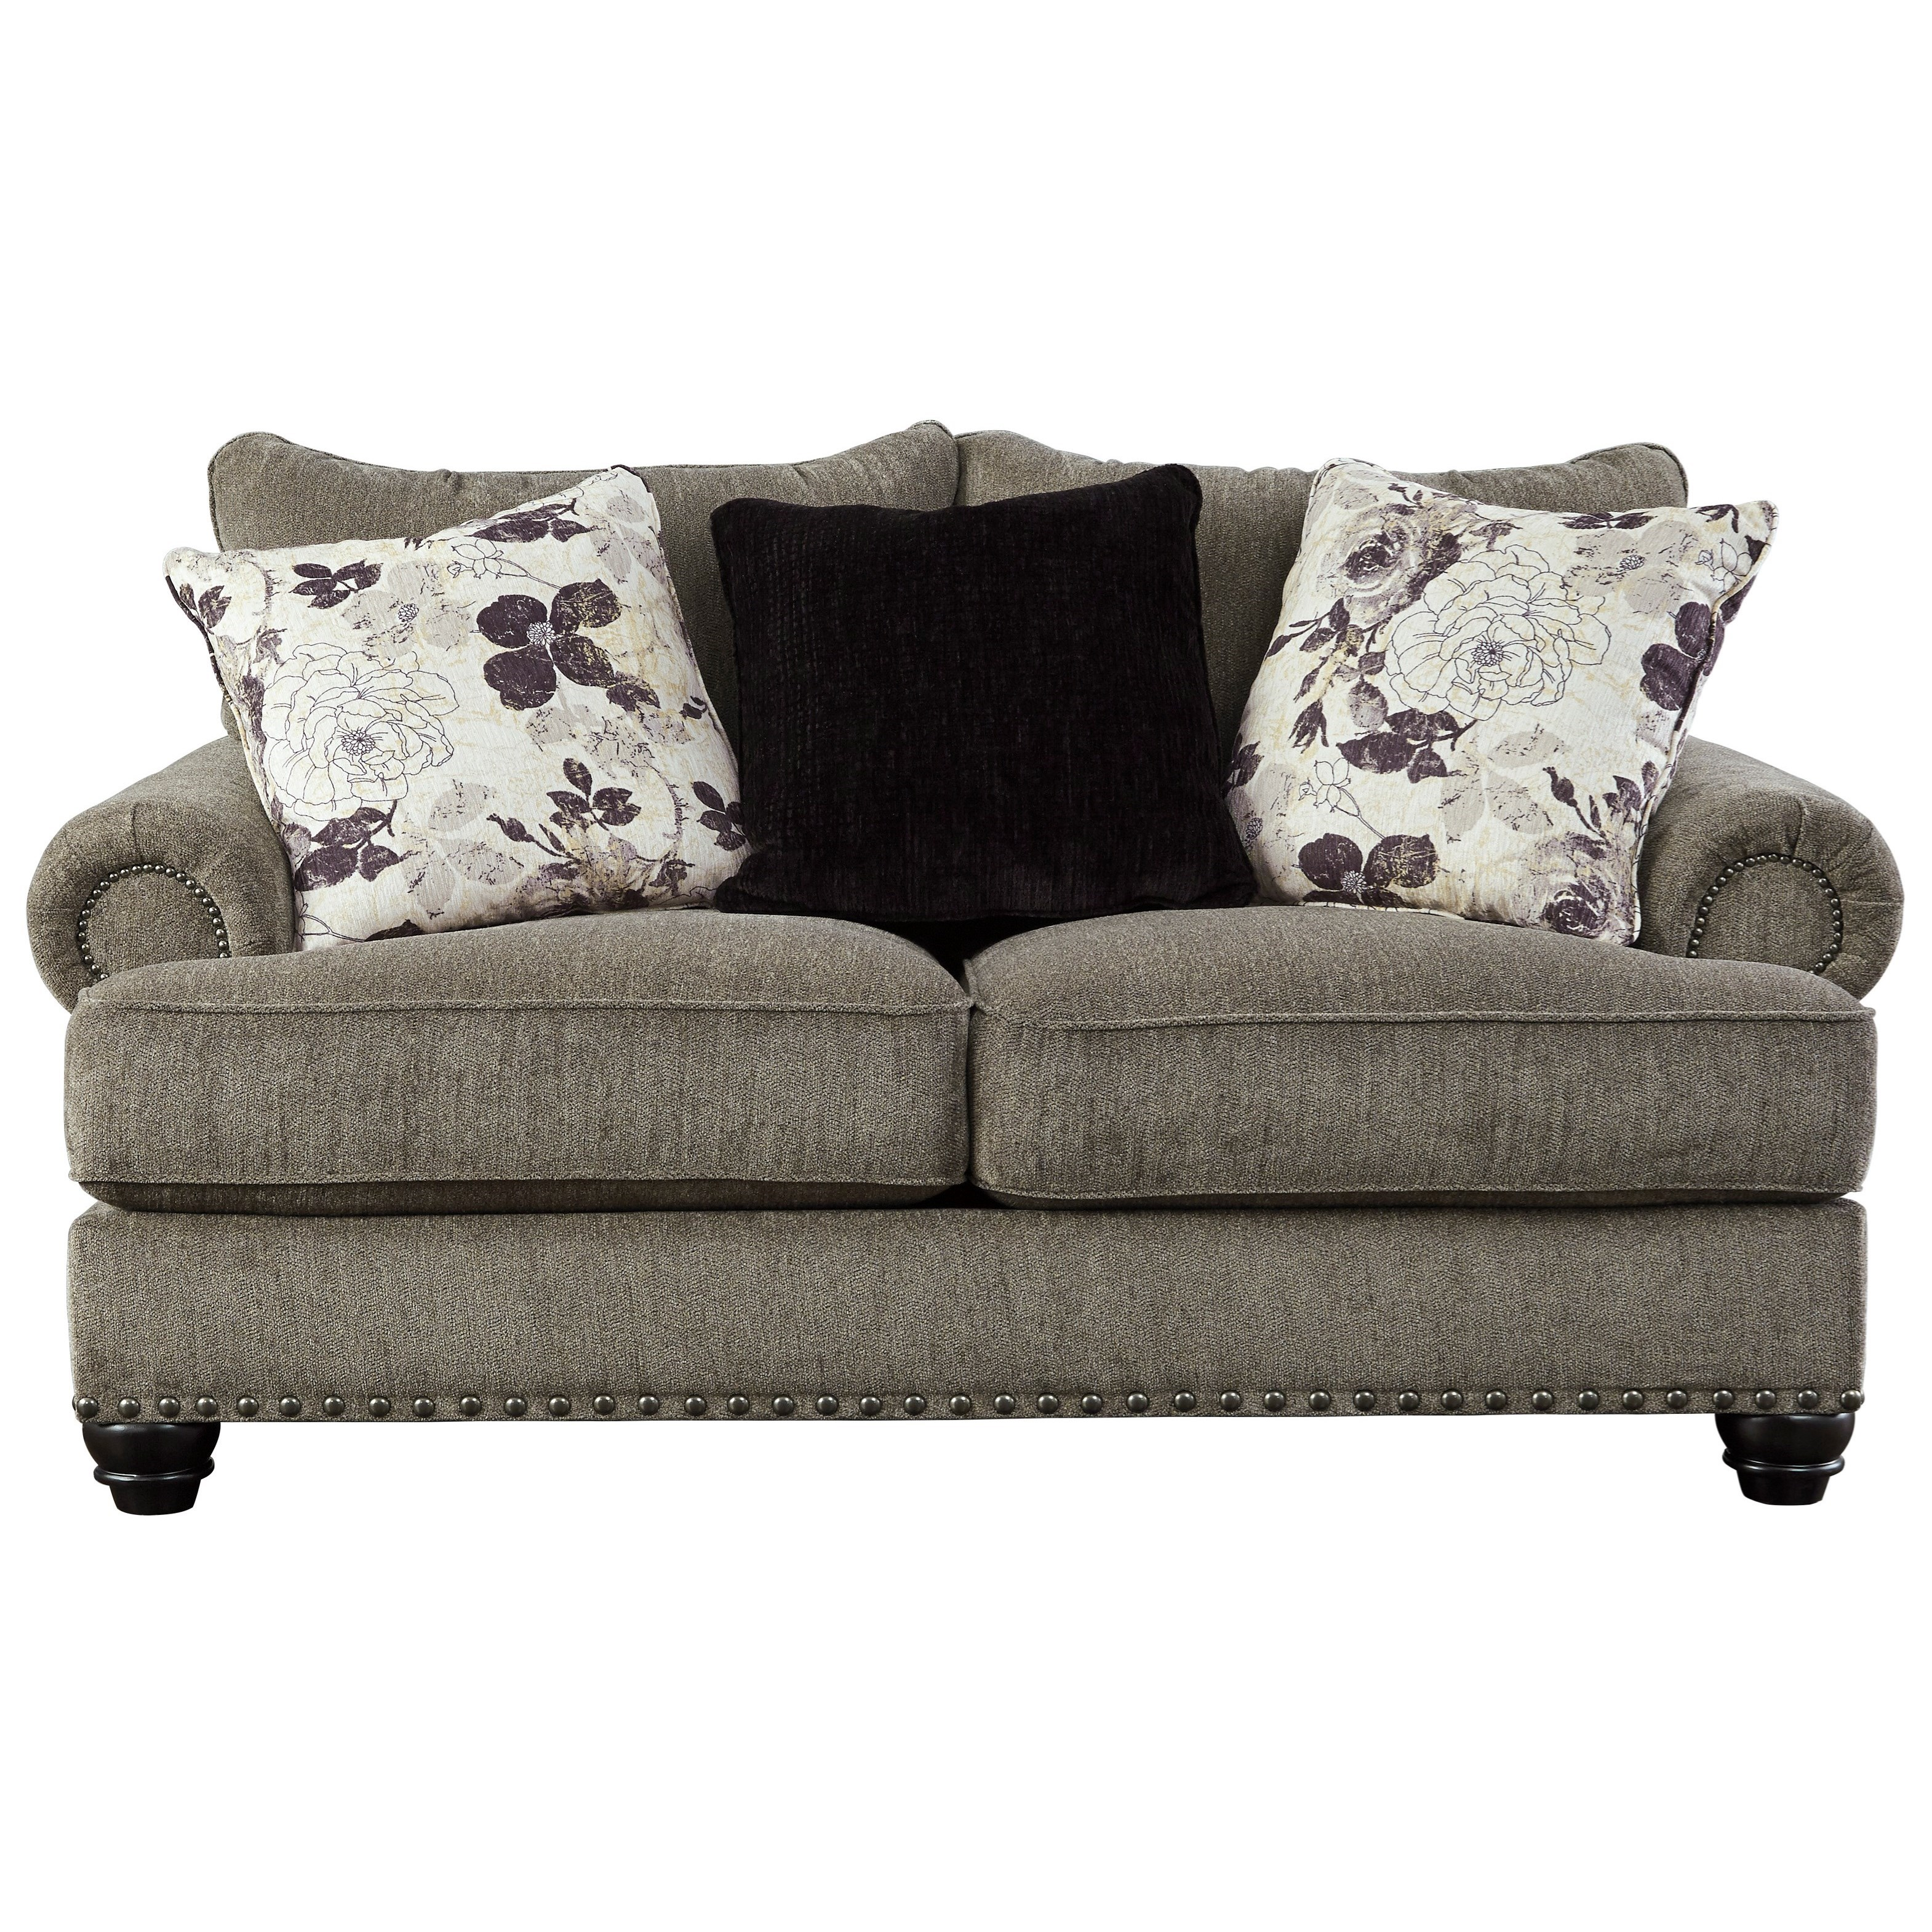 Sembler Loveseat by Benchcraft at Beds N Stuff